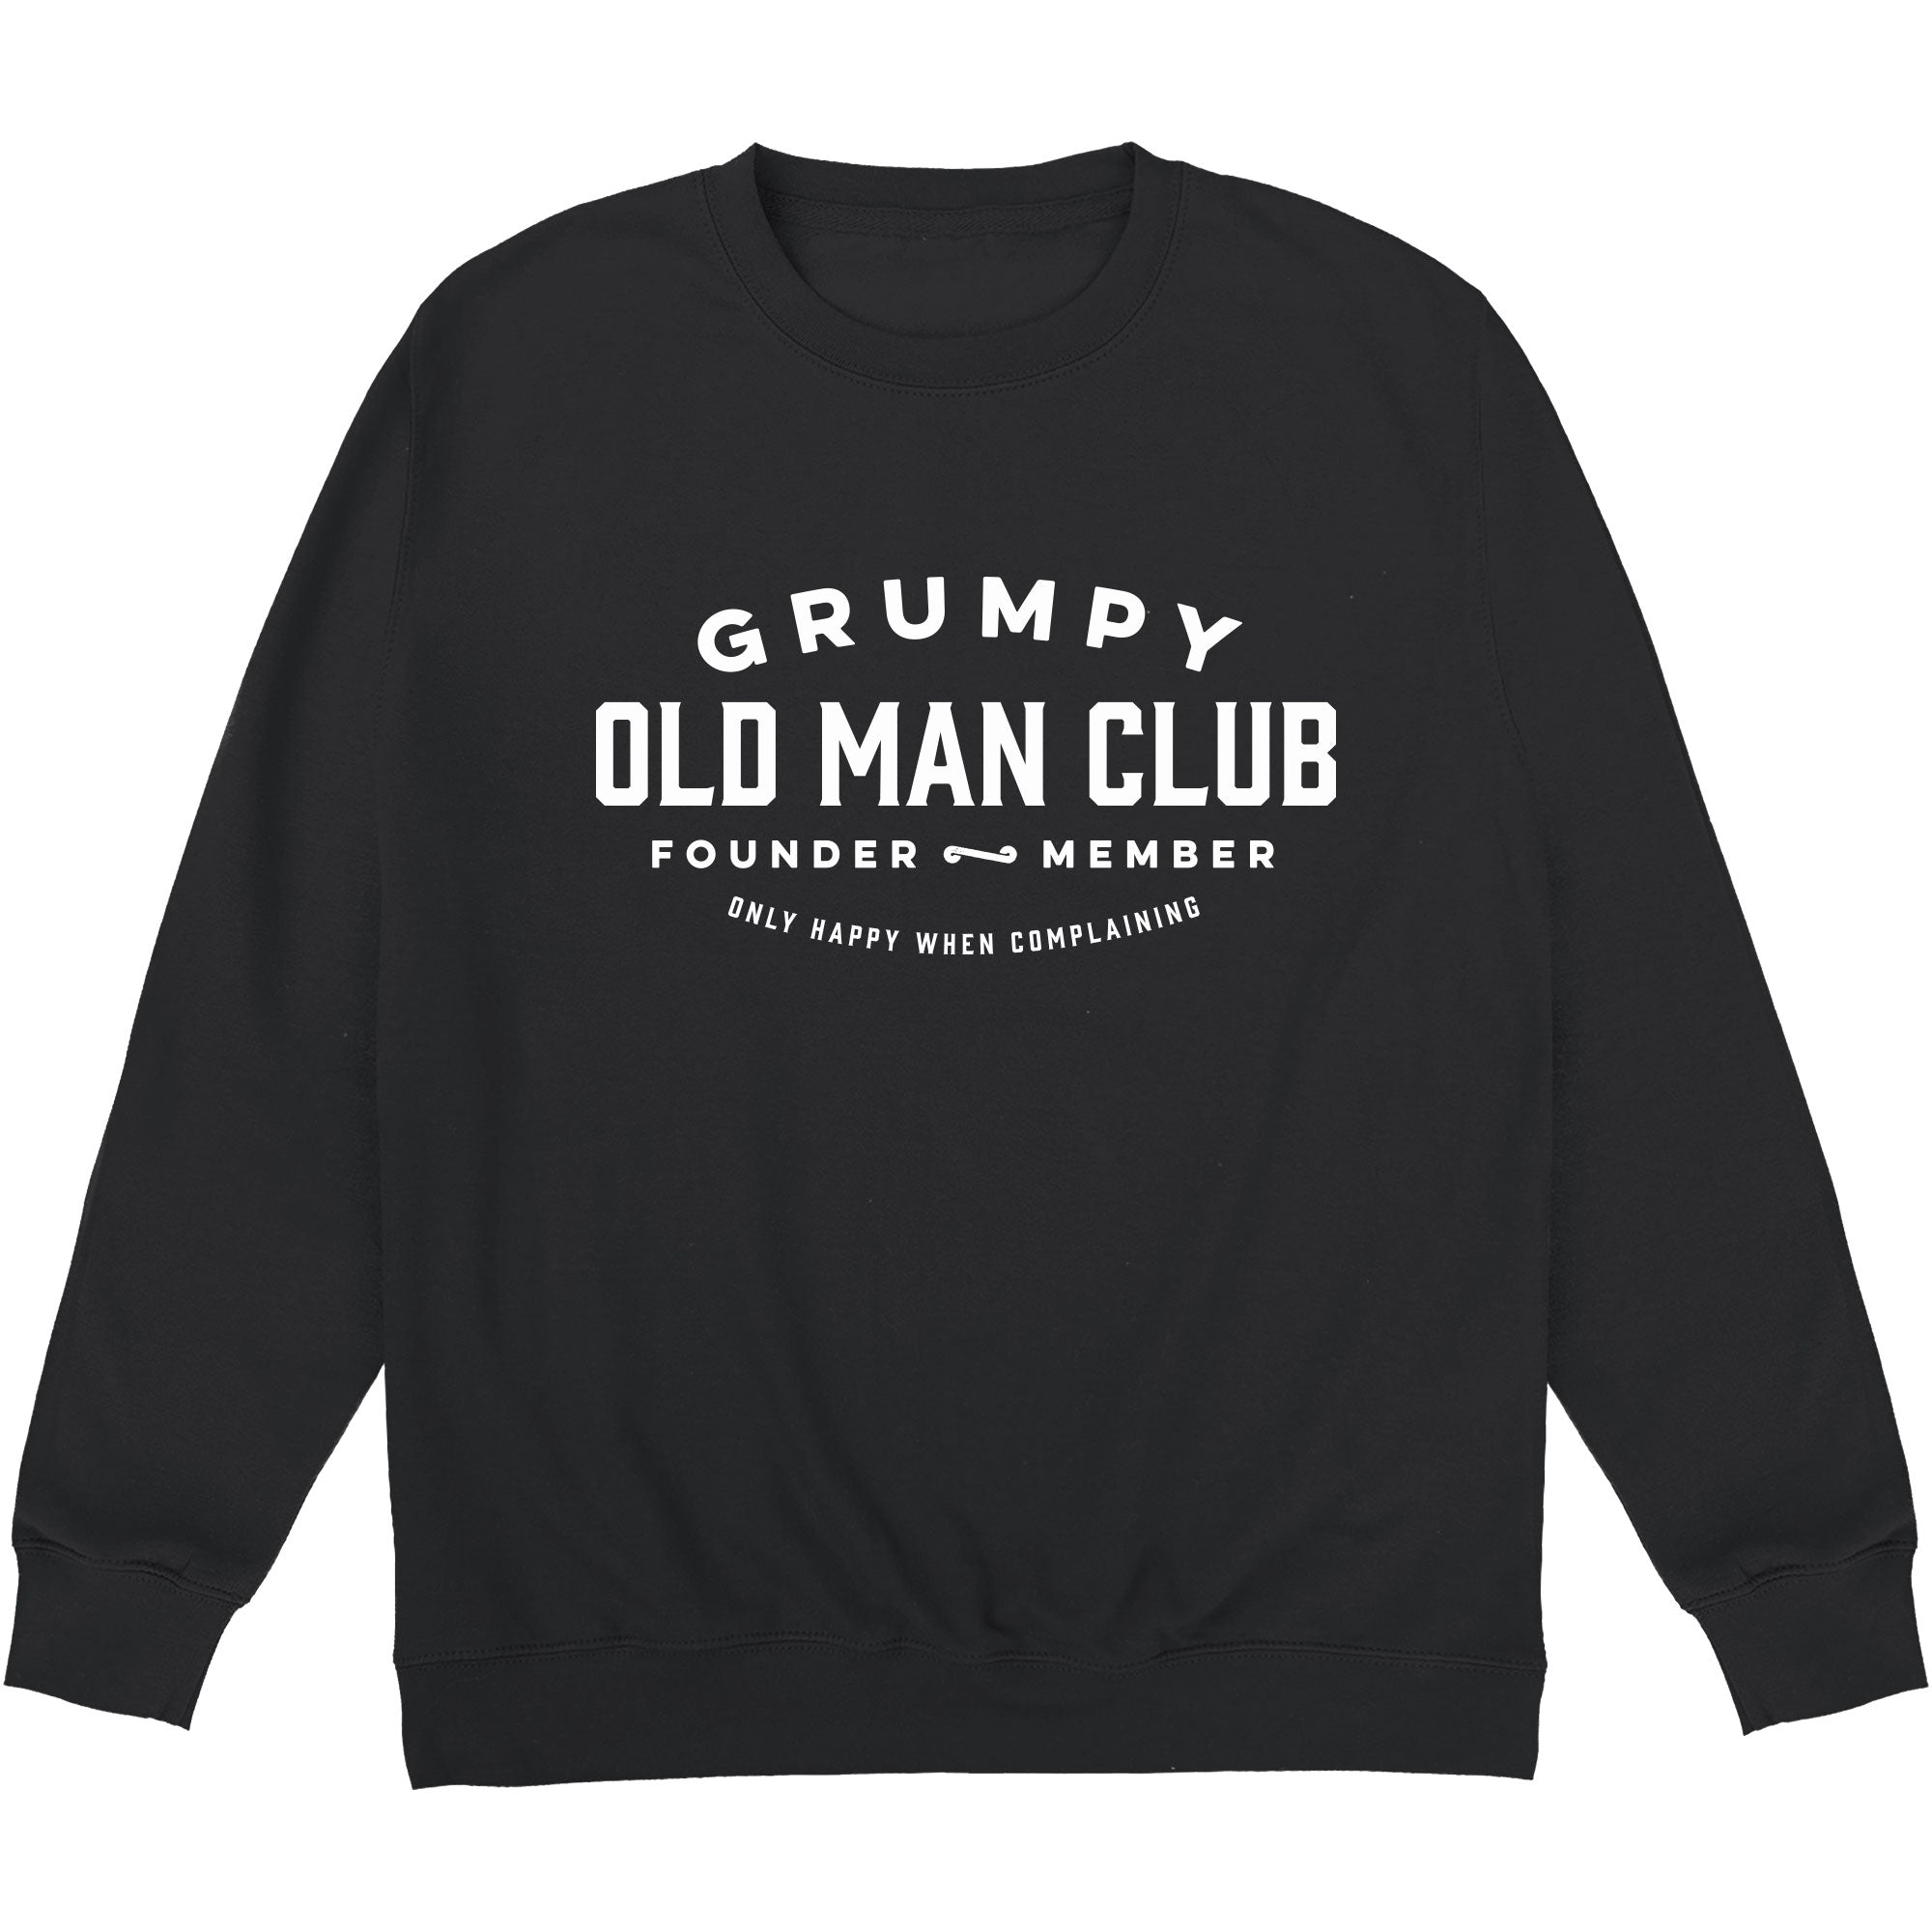 CHEAP Grumpy Old Man Club Sweatshirt 24322676407 – Clothing Accessories